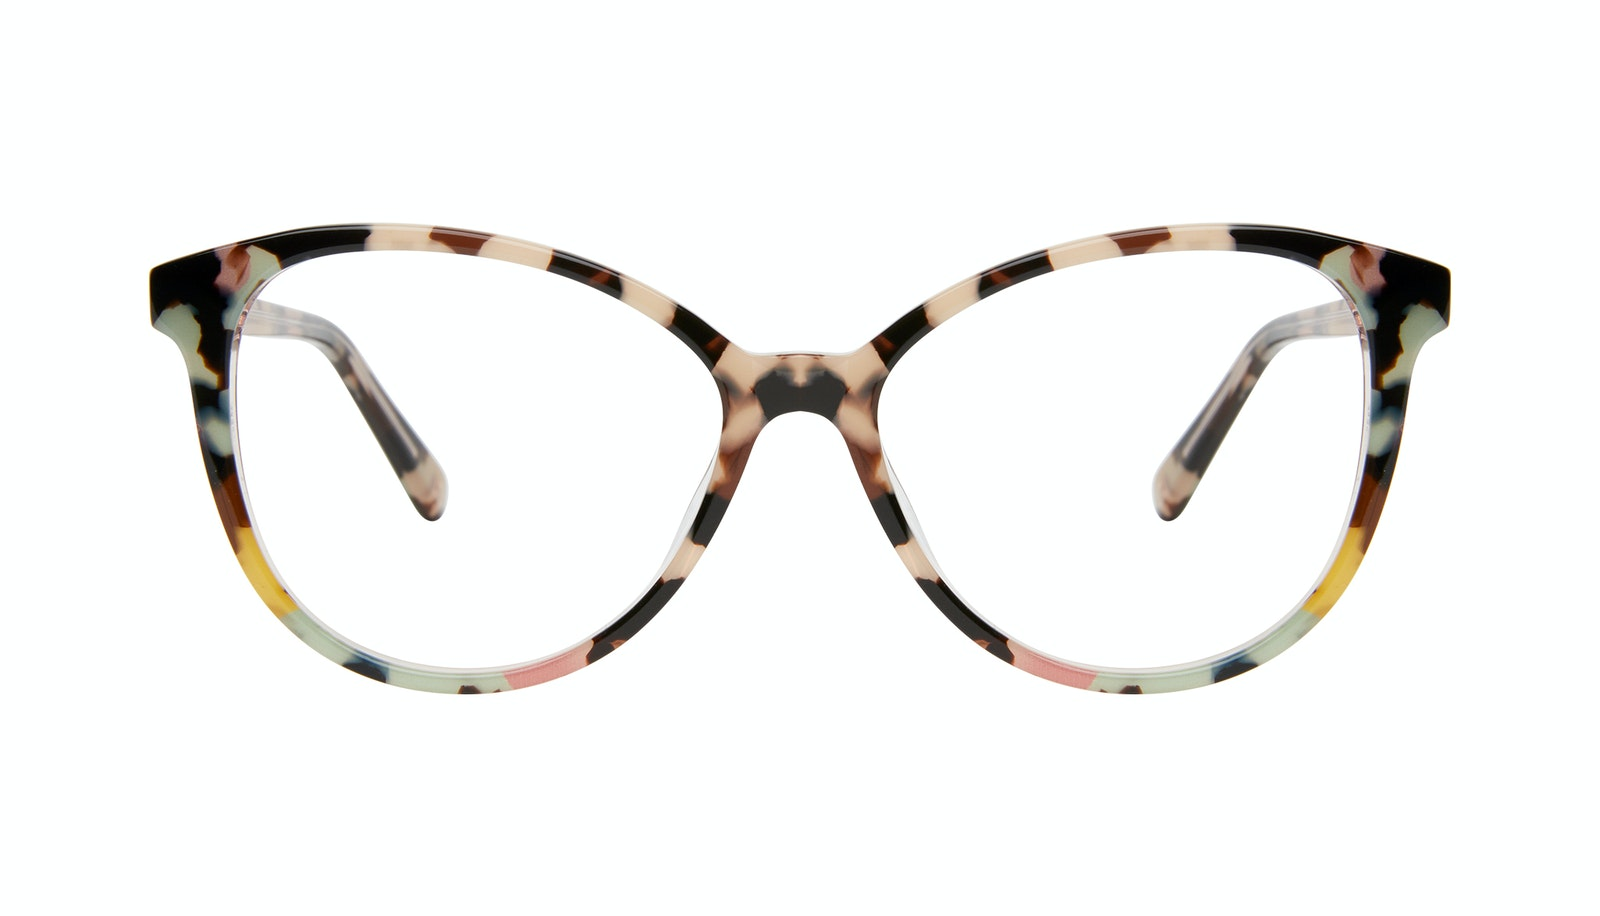 Affordable Fashion Glasses Cat Eye Eyeglasses Women Esprit Pastel Tort